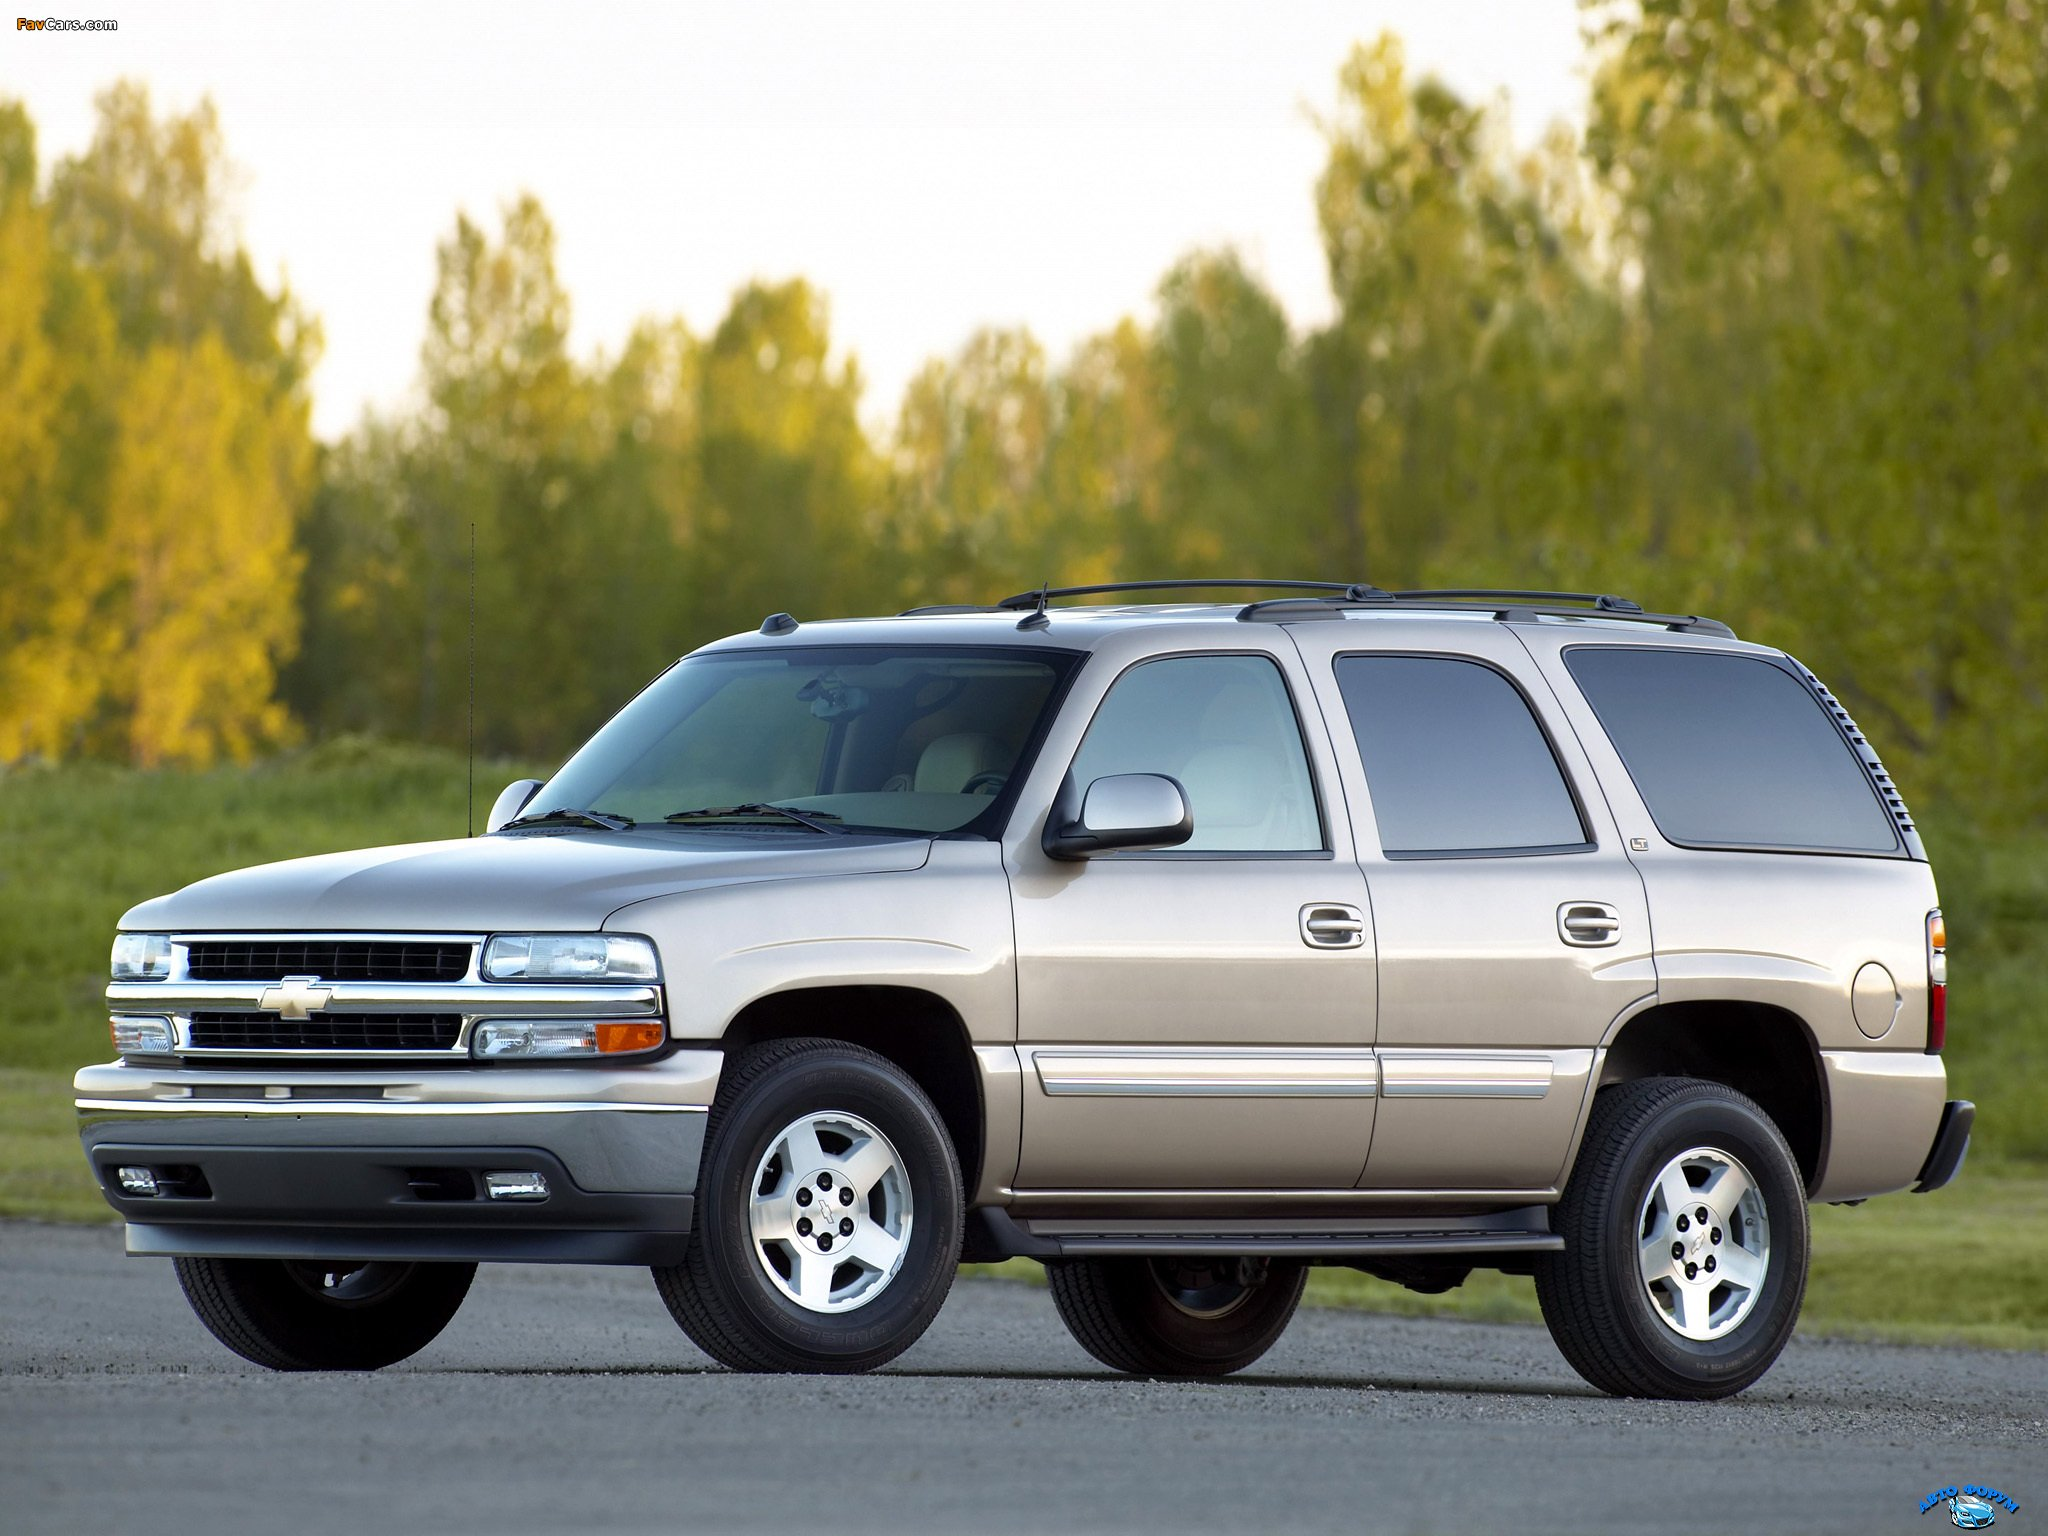 wallpapers_chevrolet_tahoe_2000_1.jpg